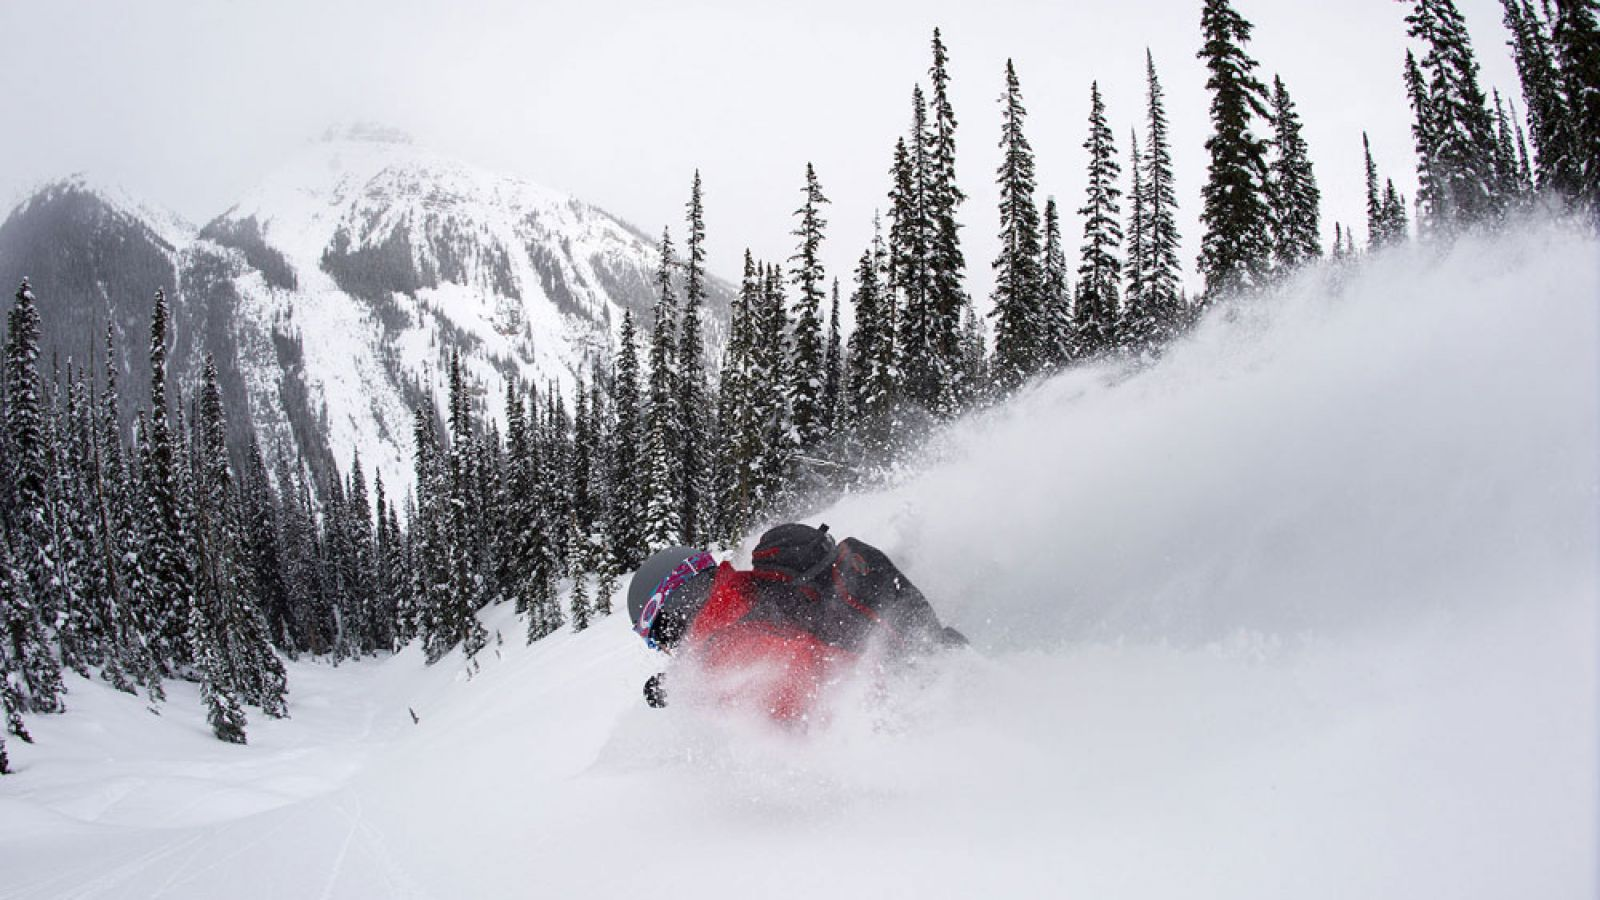 Explore the Kootenay Rockies backcountry.